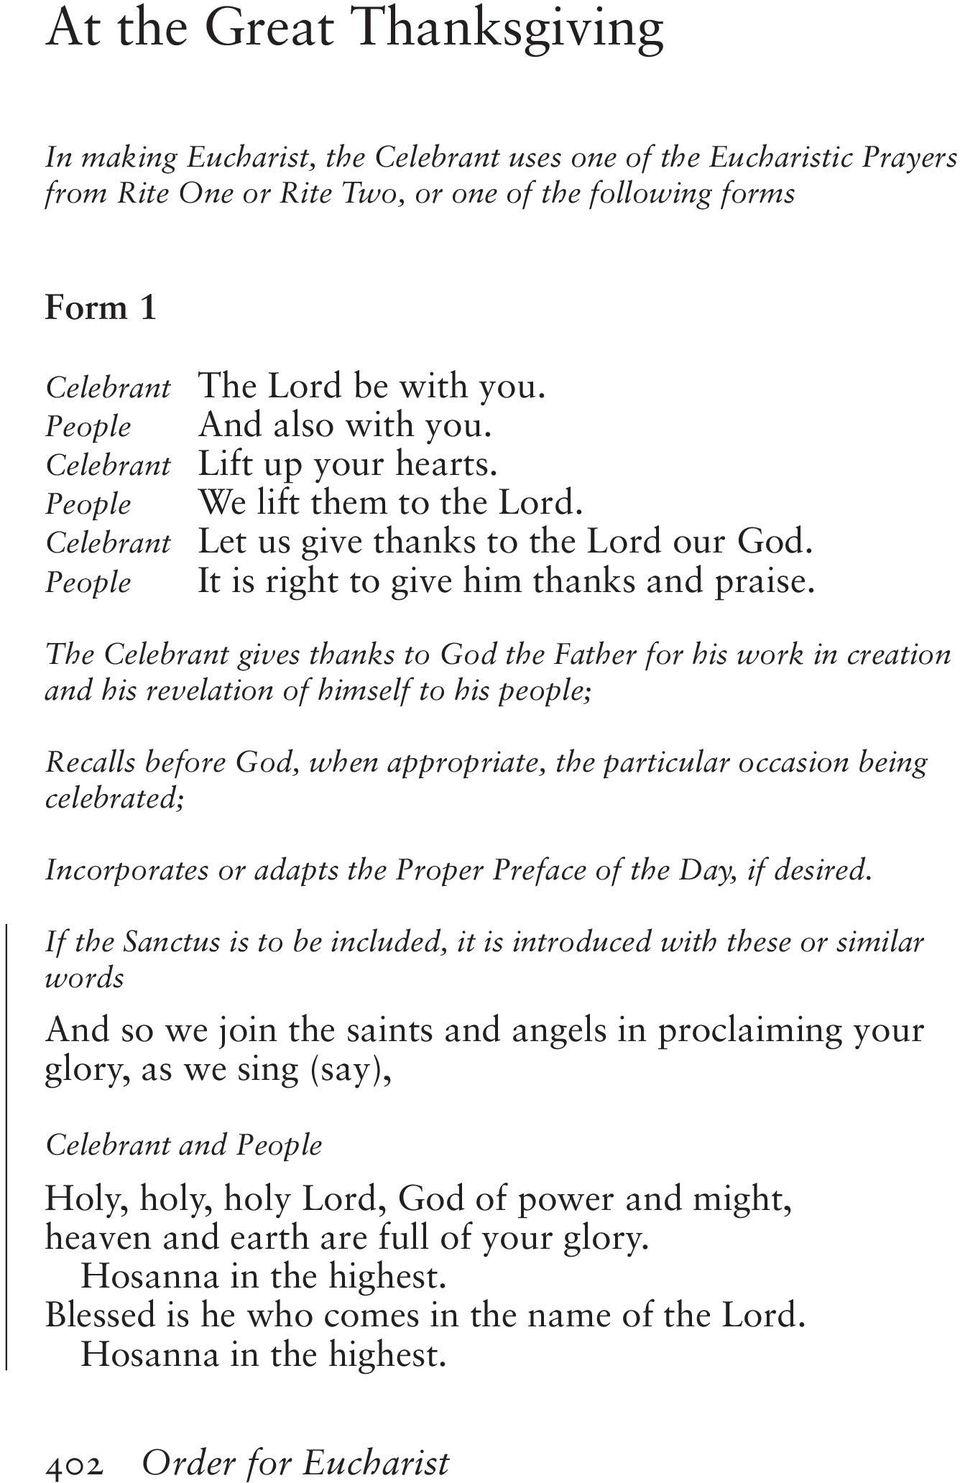 The Celebrant gives thanks to God the Father for his work in creation and his revelation of himself to his people; Recalls before God, when appropriate, the particular occasion being celebrated;